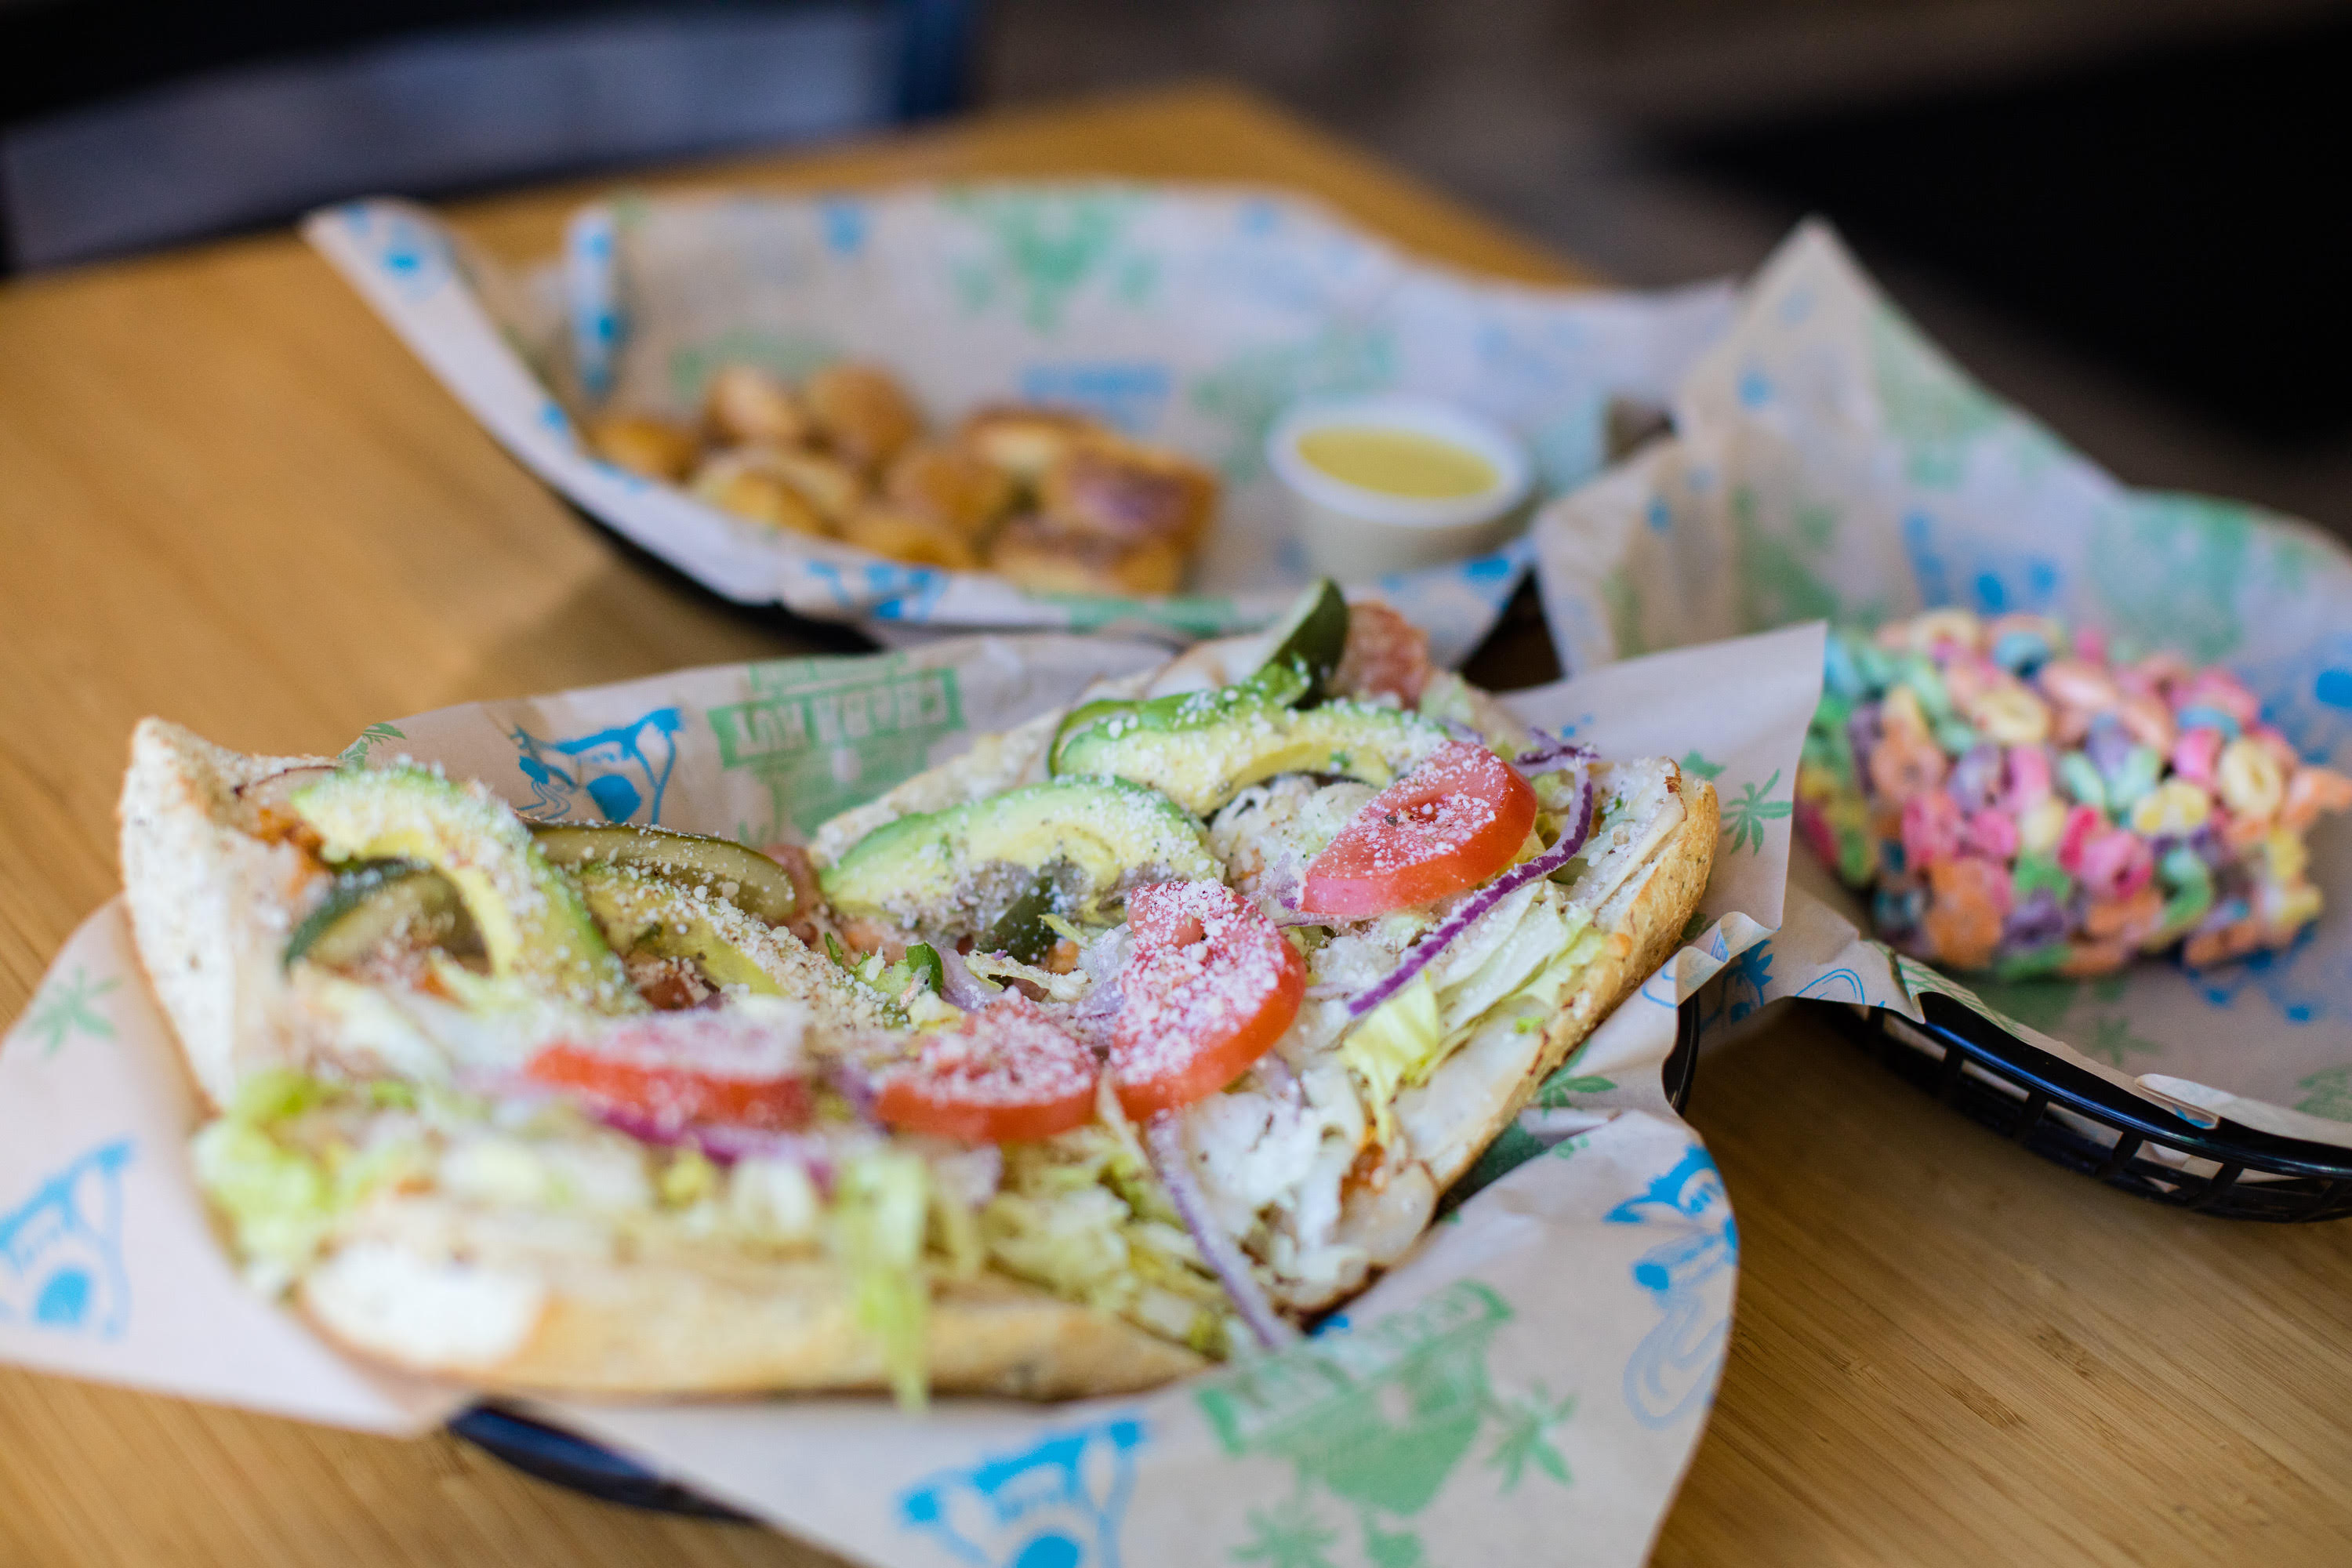 A Weed-Themed Sandwich Chain With a Full Bar Is Coming to Chicago